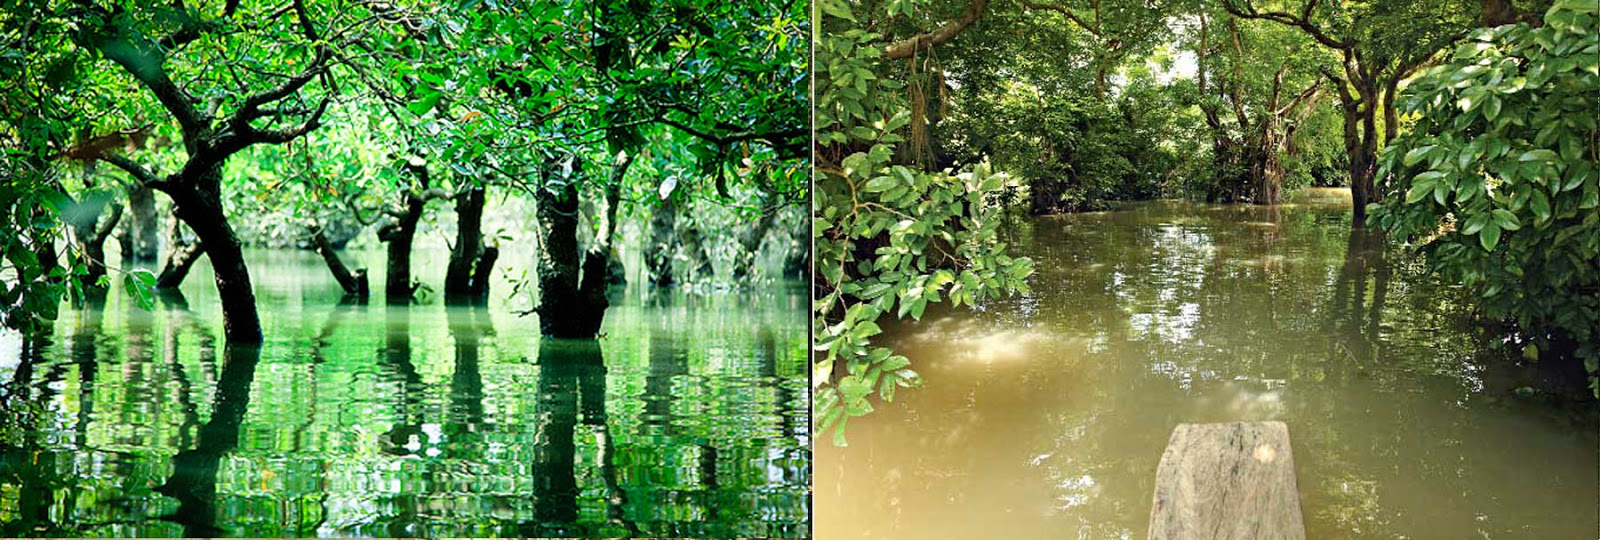 Discover Bangladesh: Ratargul swamp forest – only freshwater swamp ...